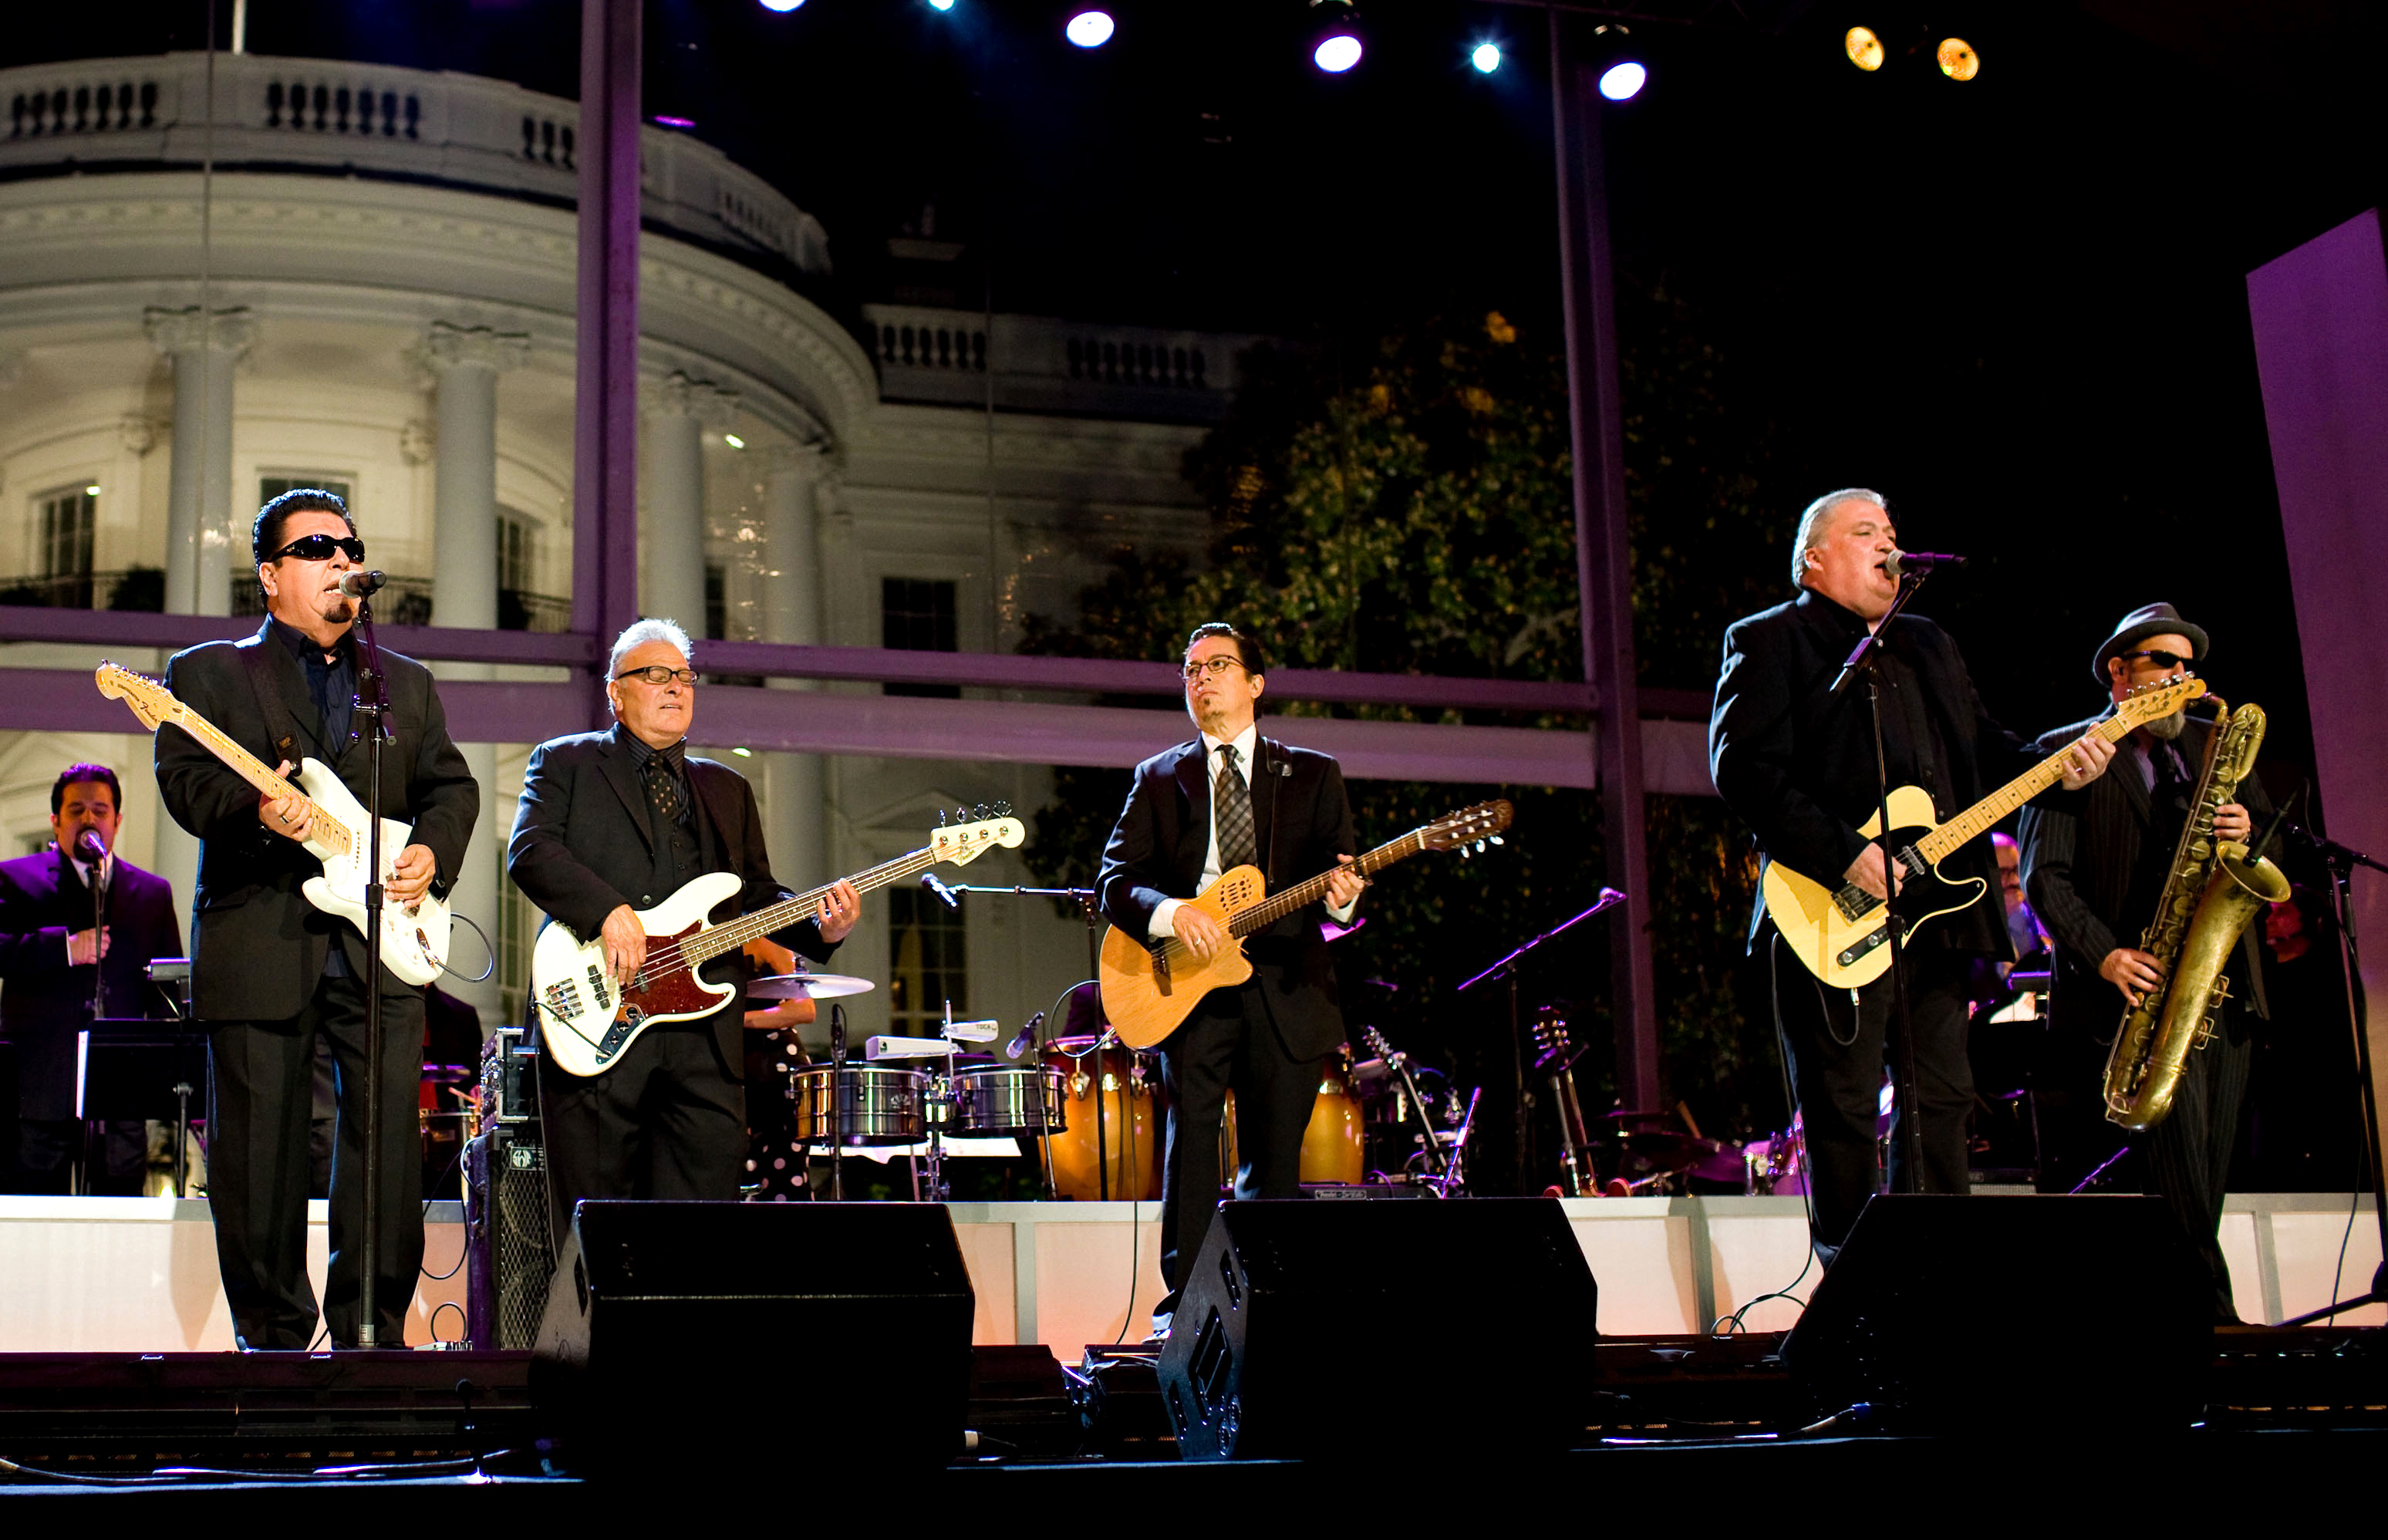 File:Los Lobos at the White House.jpg - Wikimedia Commons